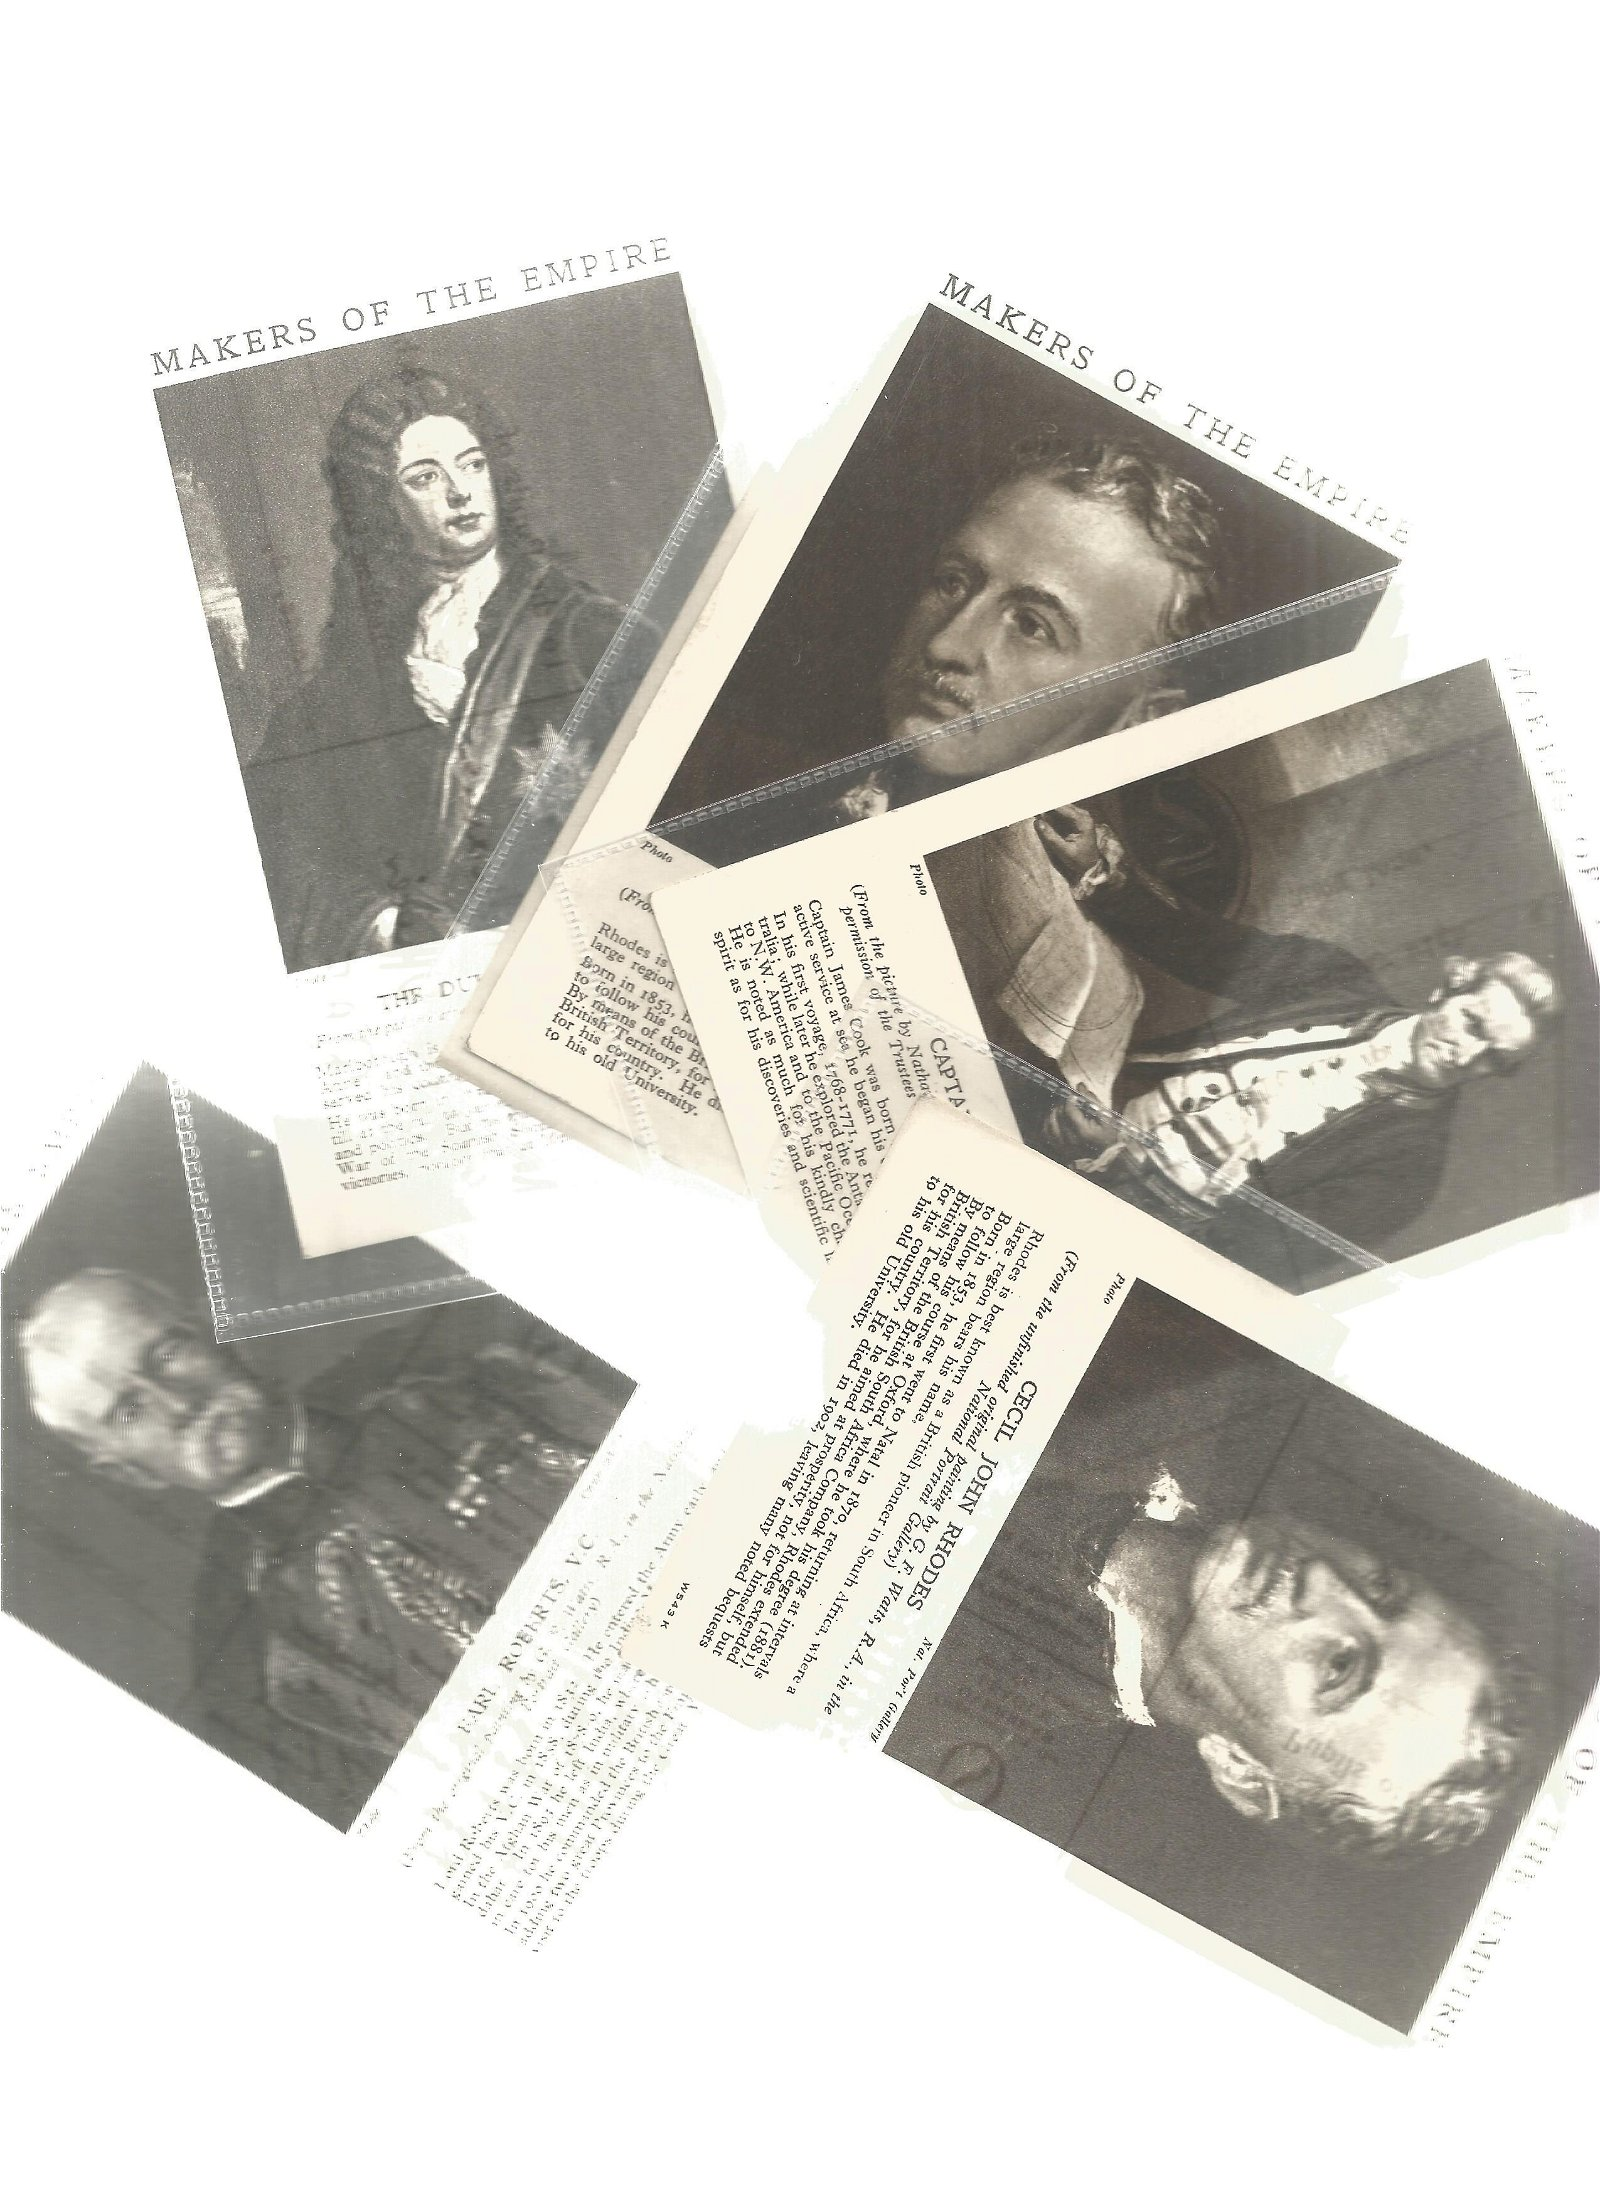 Postcards, World War 2, six cards Makers of the Empire